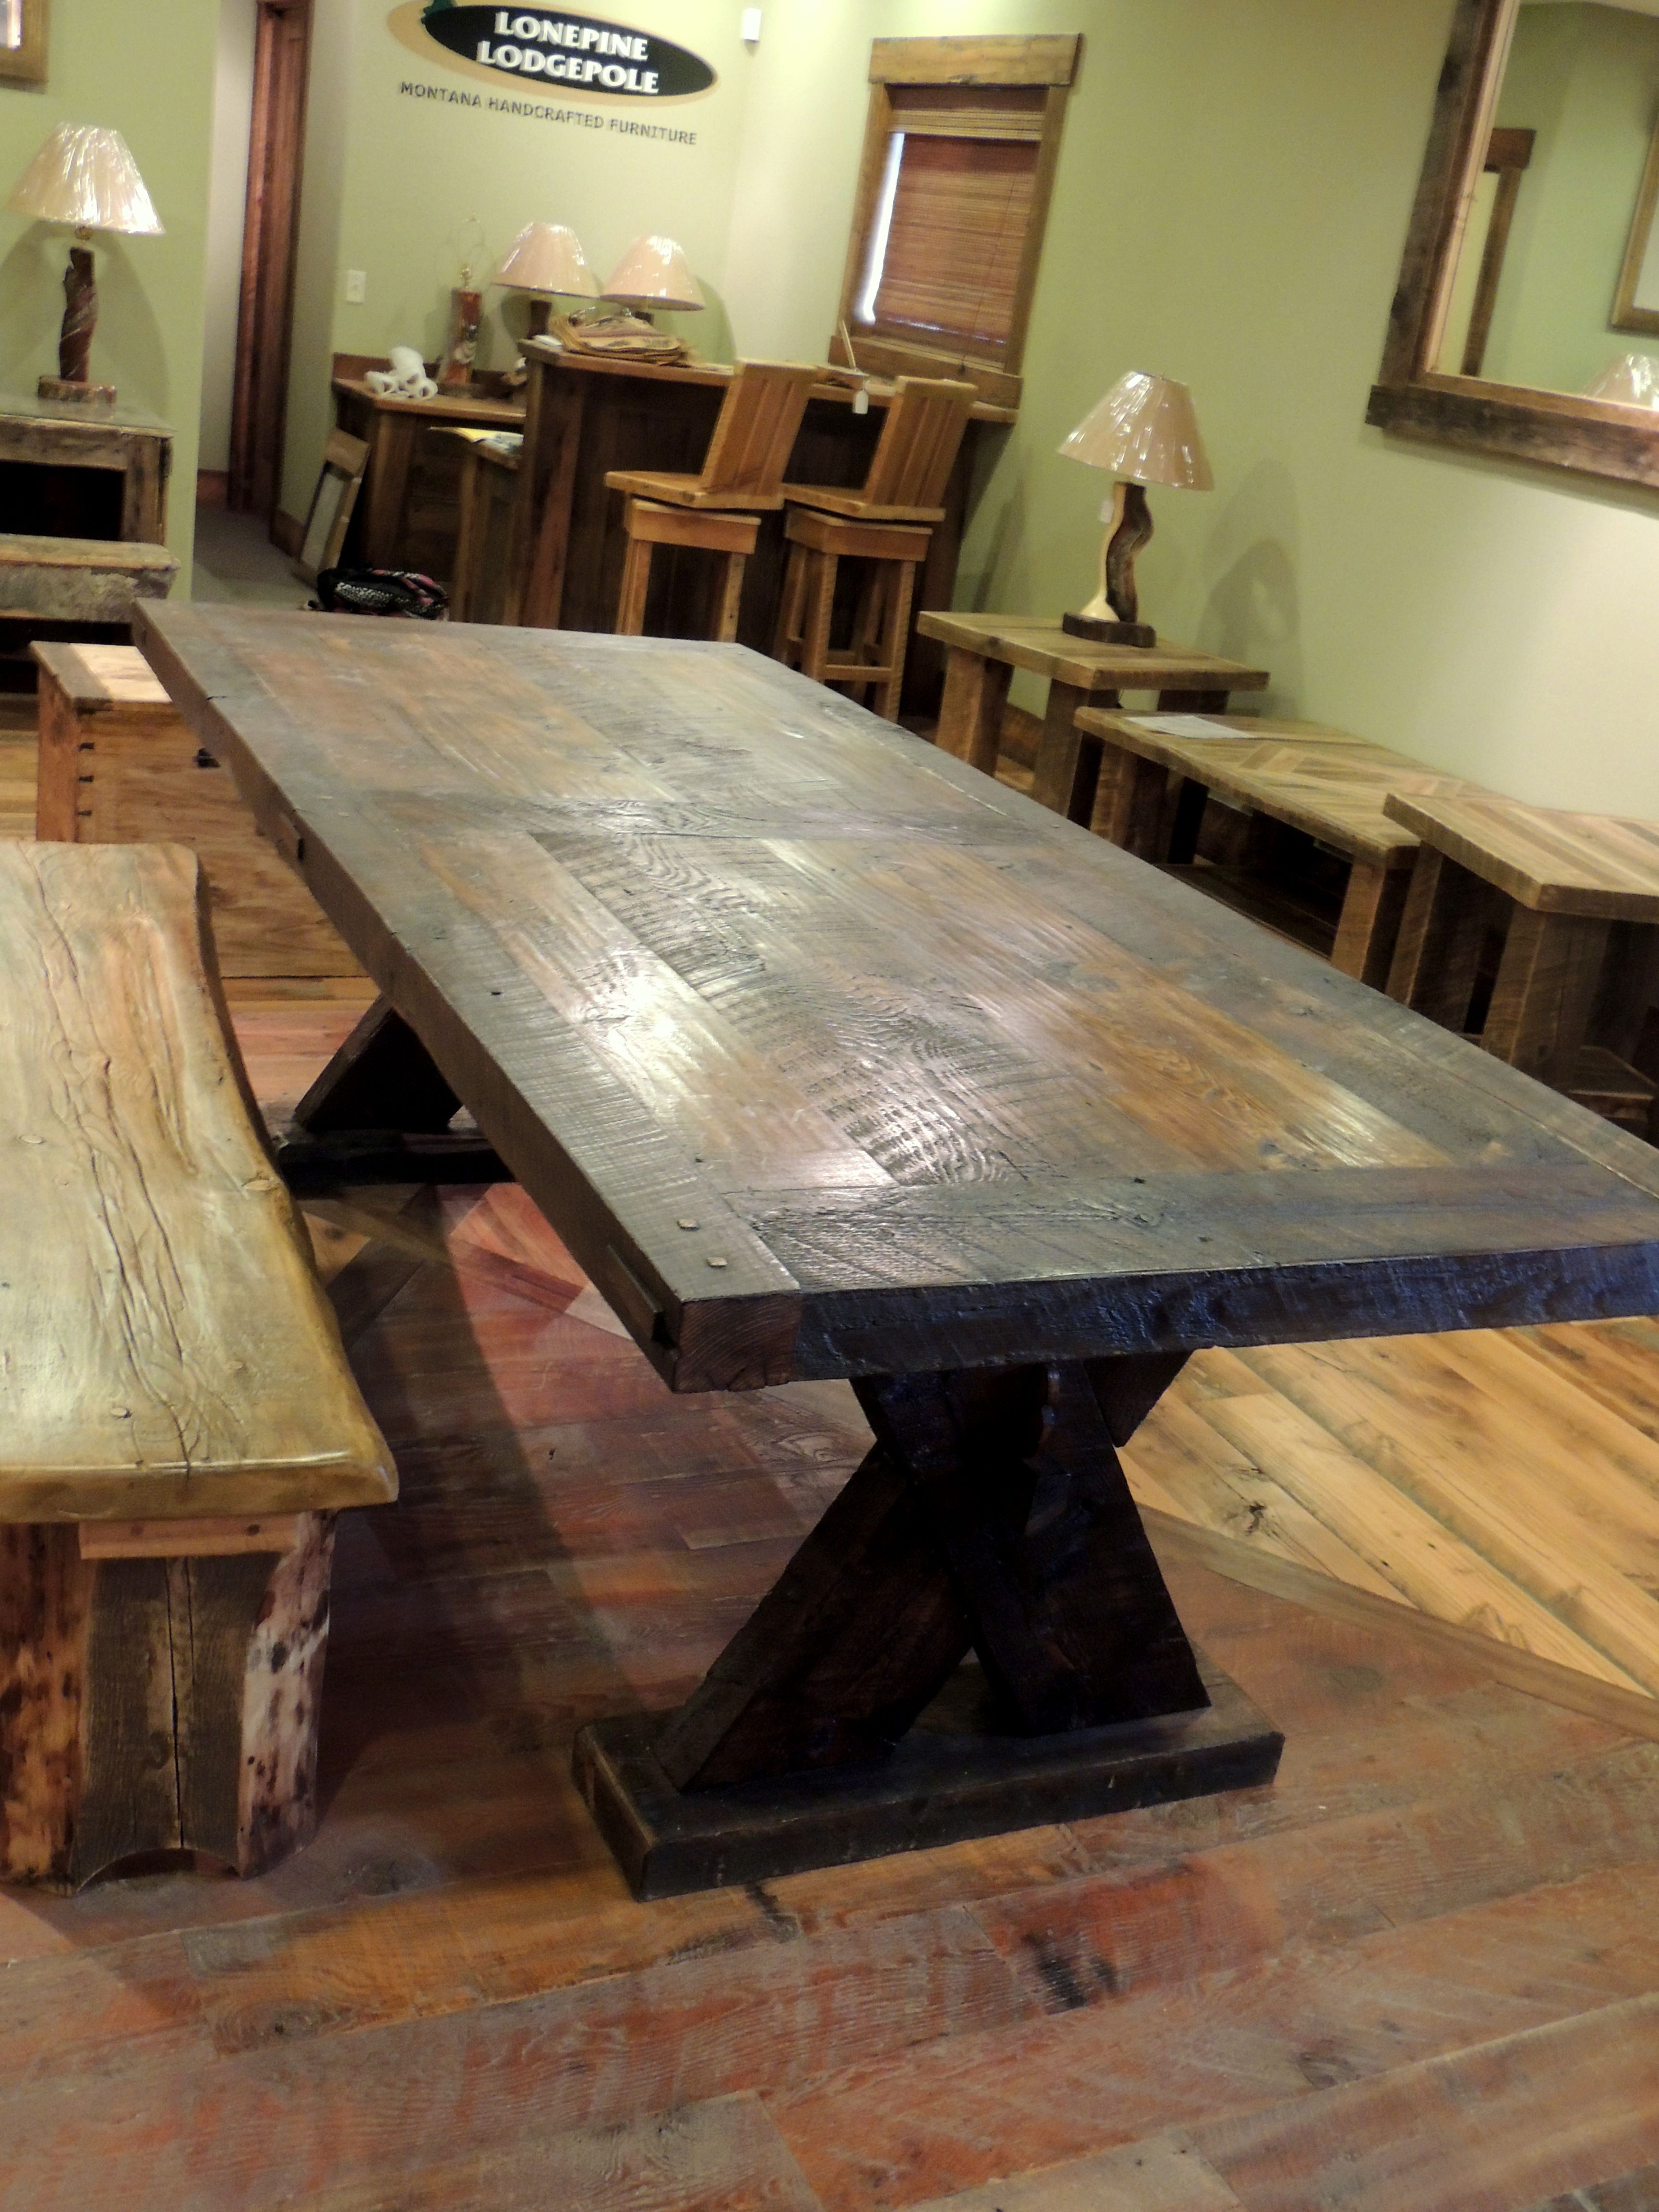 handcrafted rustic viking dining table   40  x97     wood from the bridge at handcrafted rustic viking dining table   40  x97     wood from the      rh   pinterest com